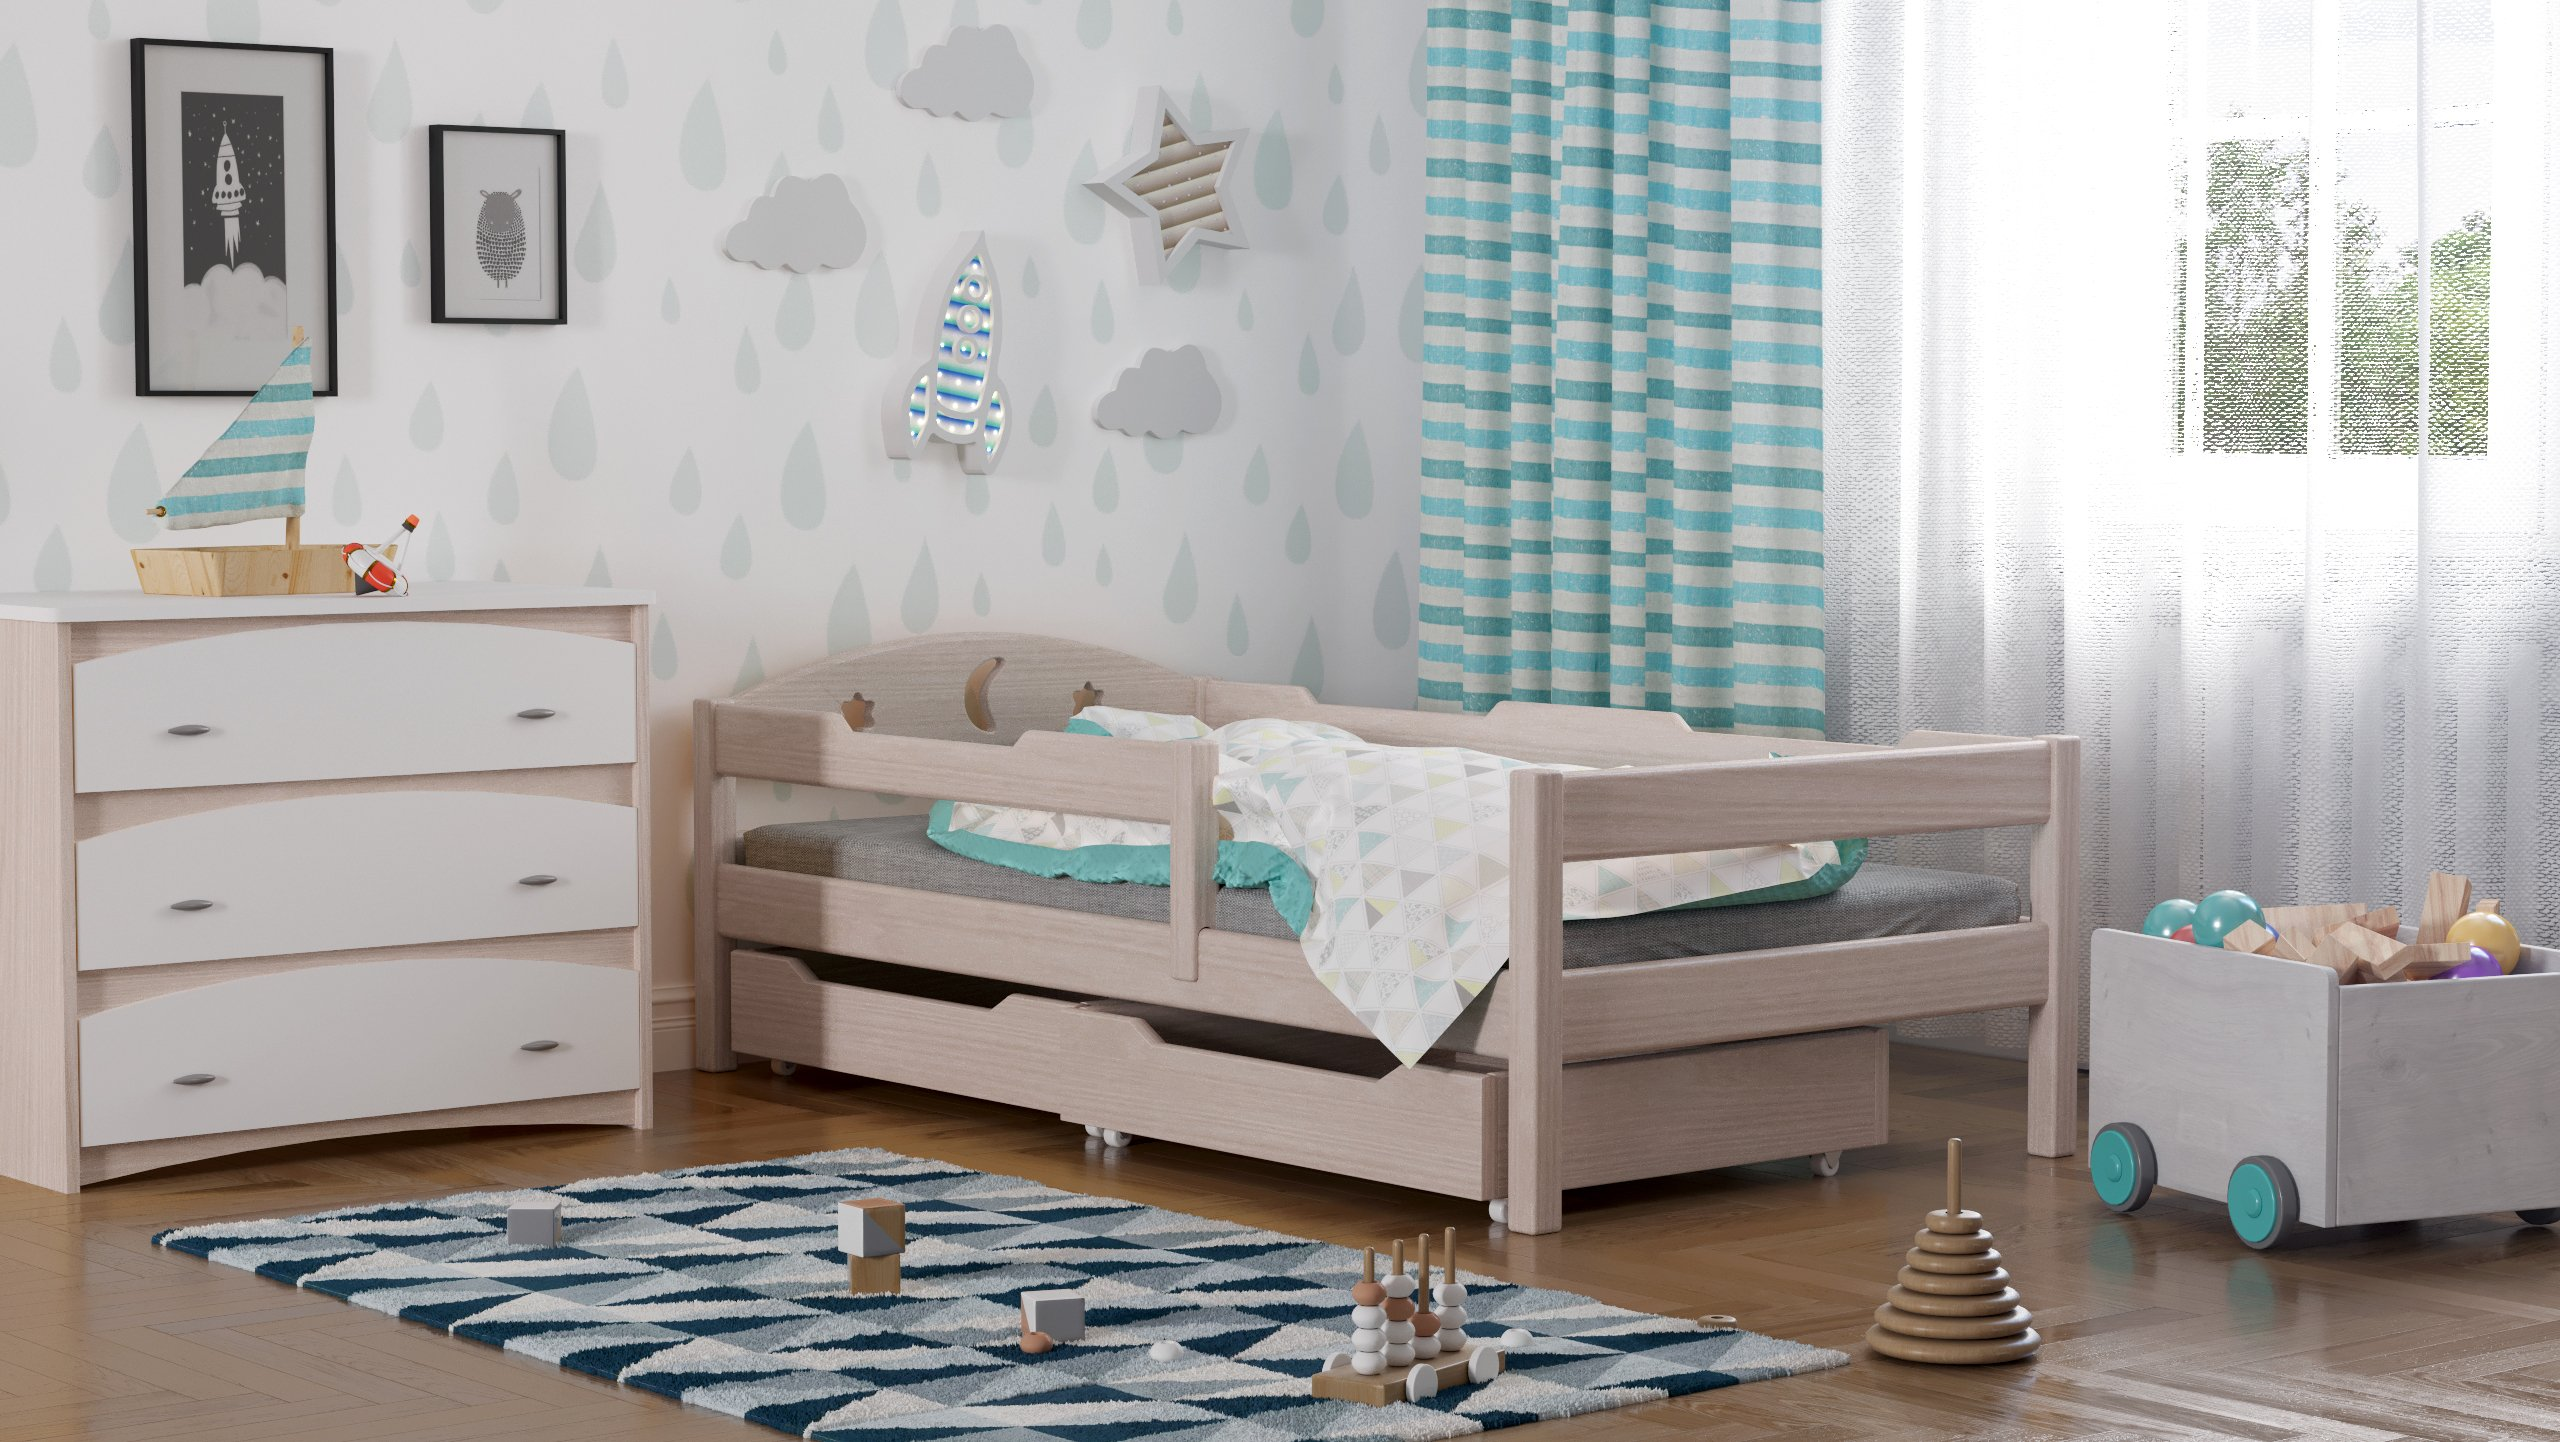 Oliwia single bed with drawers for kids made of solid wood - different sizes - 6 colours (Bleached Oak, 200x90) WNM Group Bed made entirely of exclusive solid pine wood, frame strength up to 300 kg Protective barrier for size 140x70 is 80cm for other sizes 105cm The bed is suitable for 10-12 cm mattresses. (Mattress is not included) 1